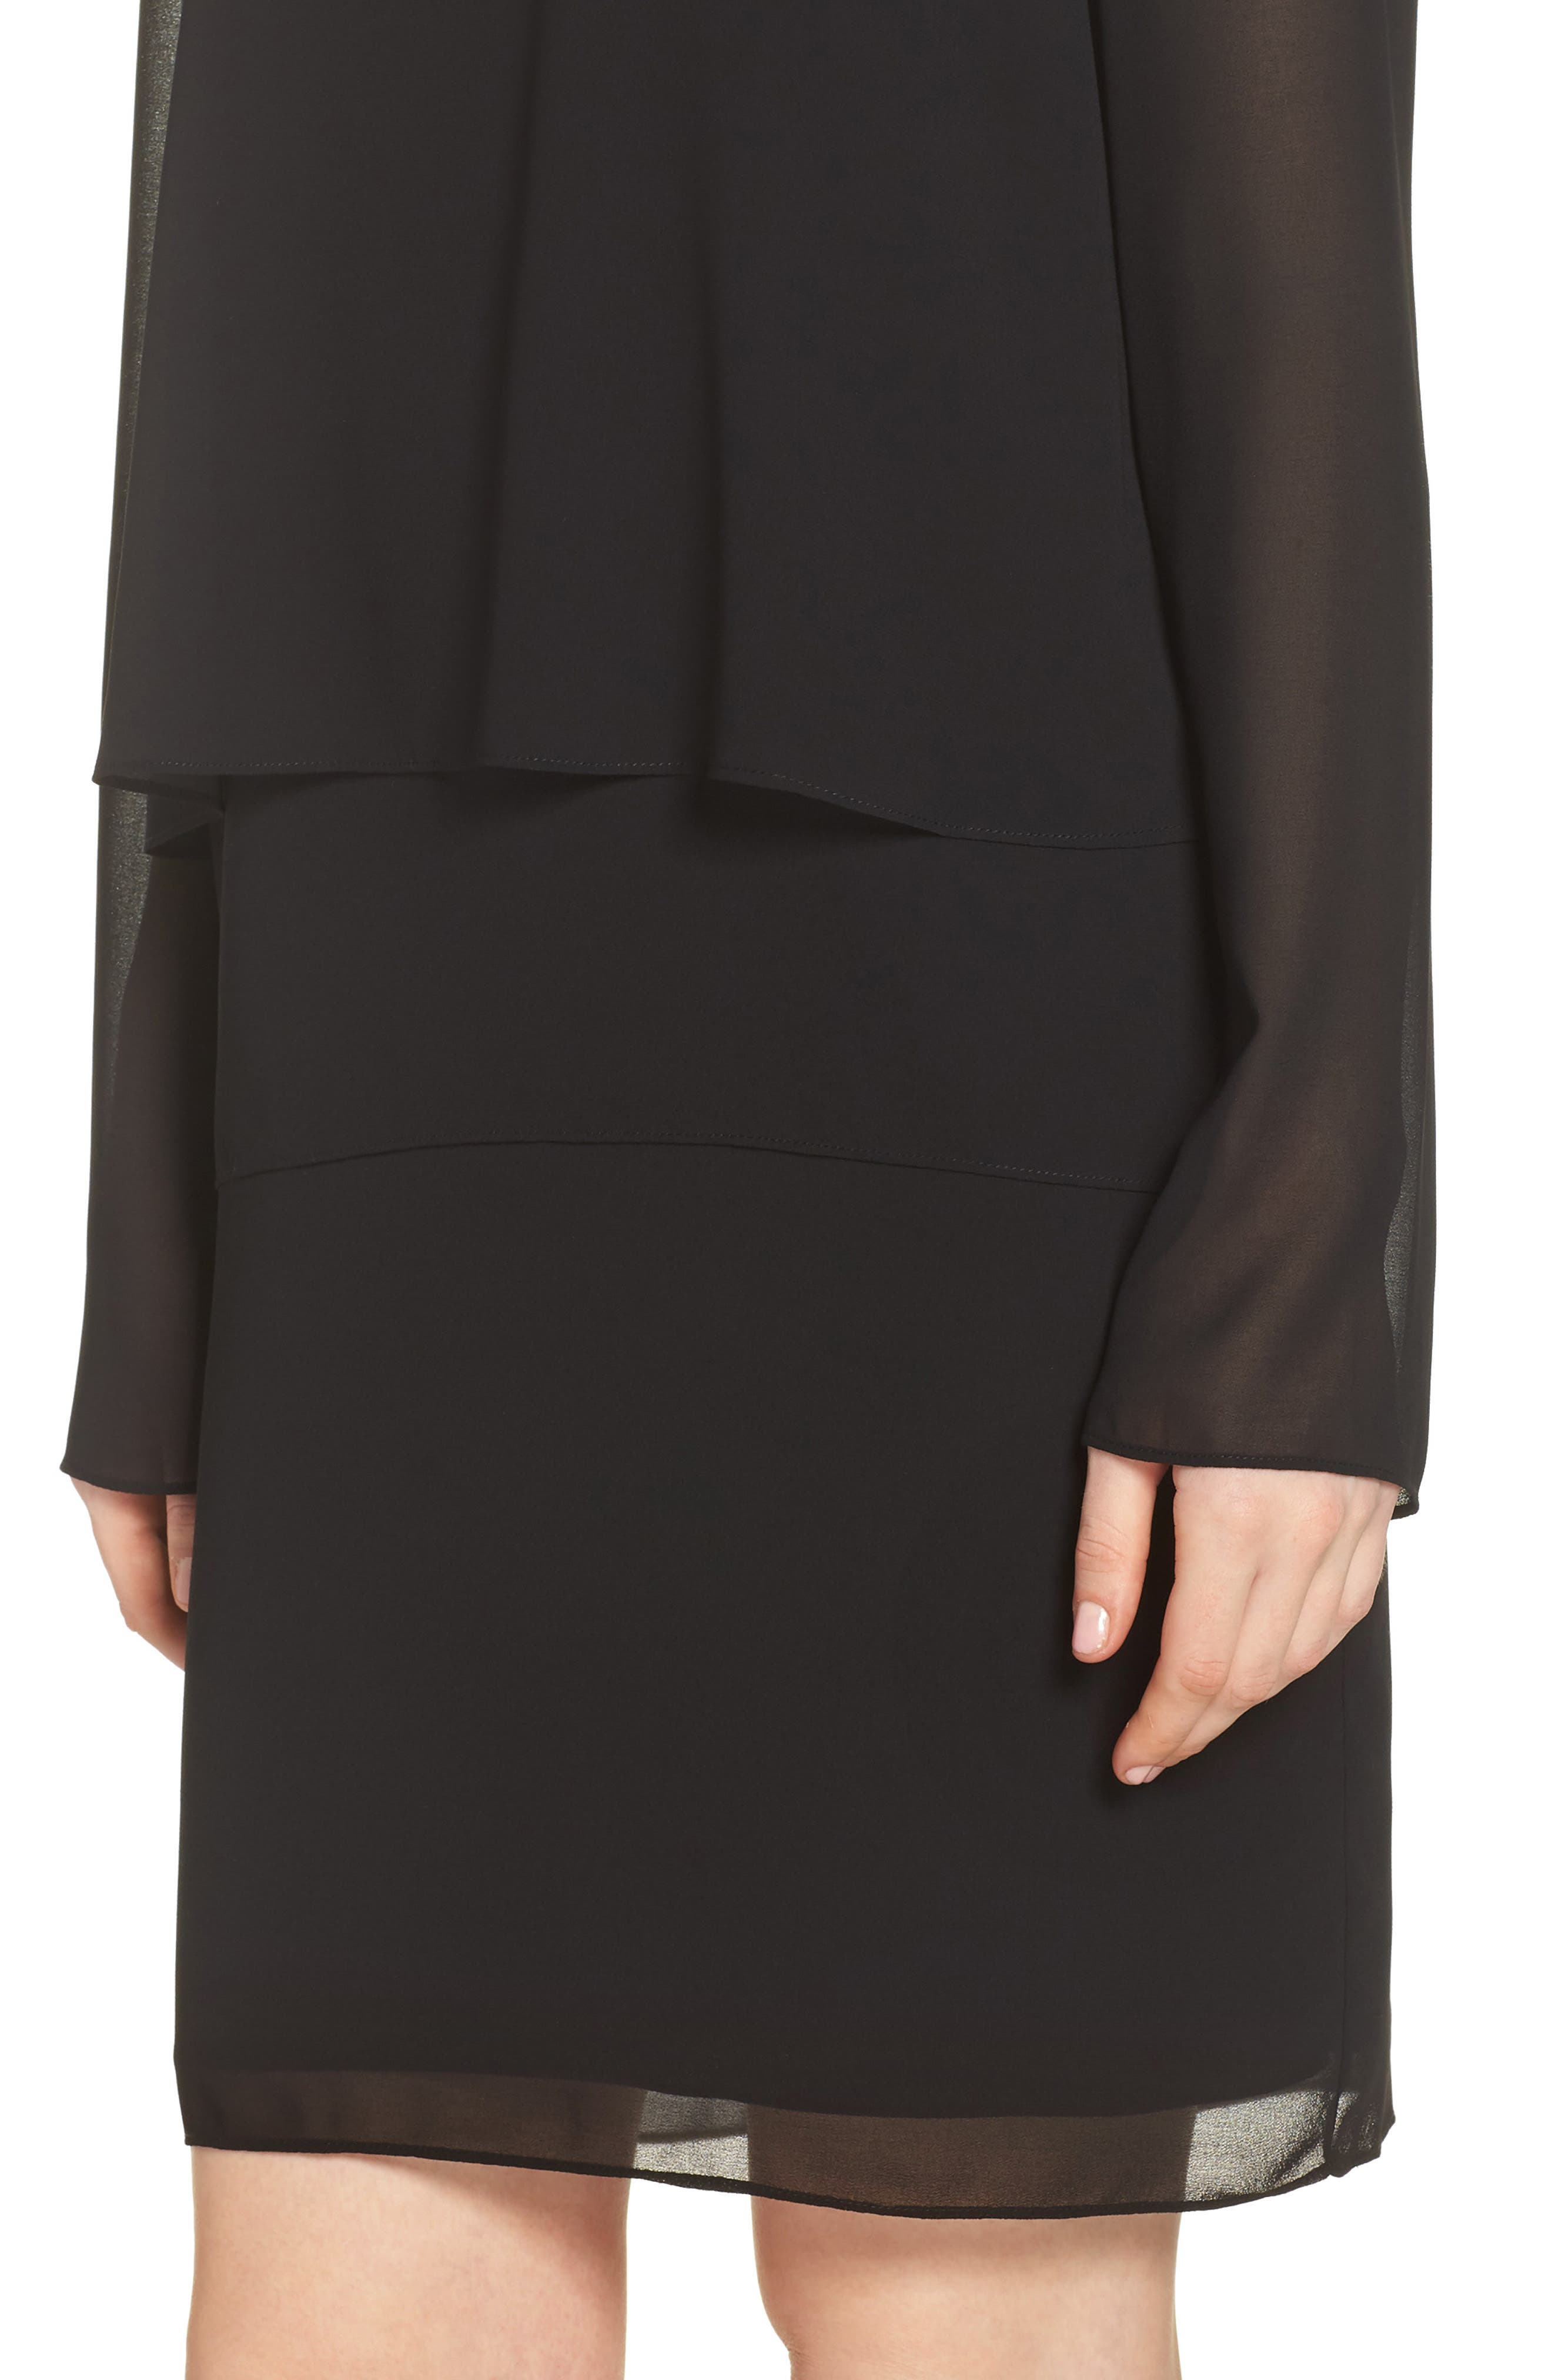 CHARLES HENRY, Layered Popover Chiffon Dress, Alternate thumbnail 5, color, 001